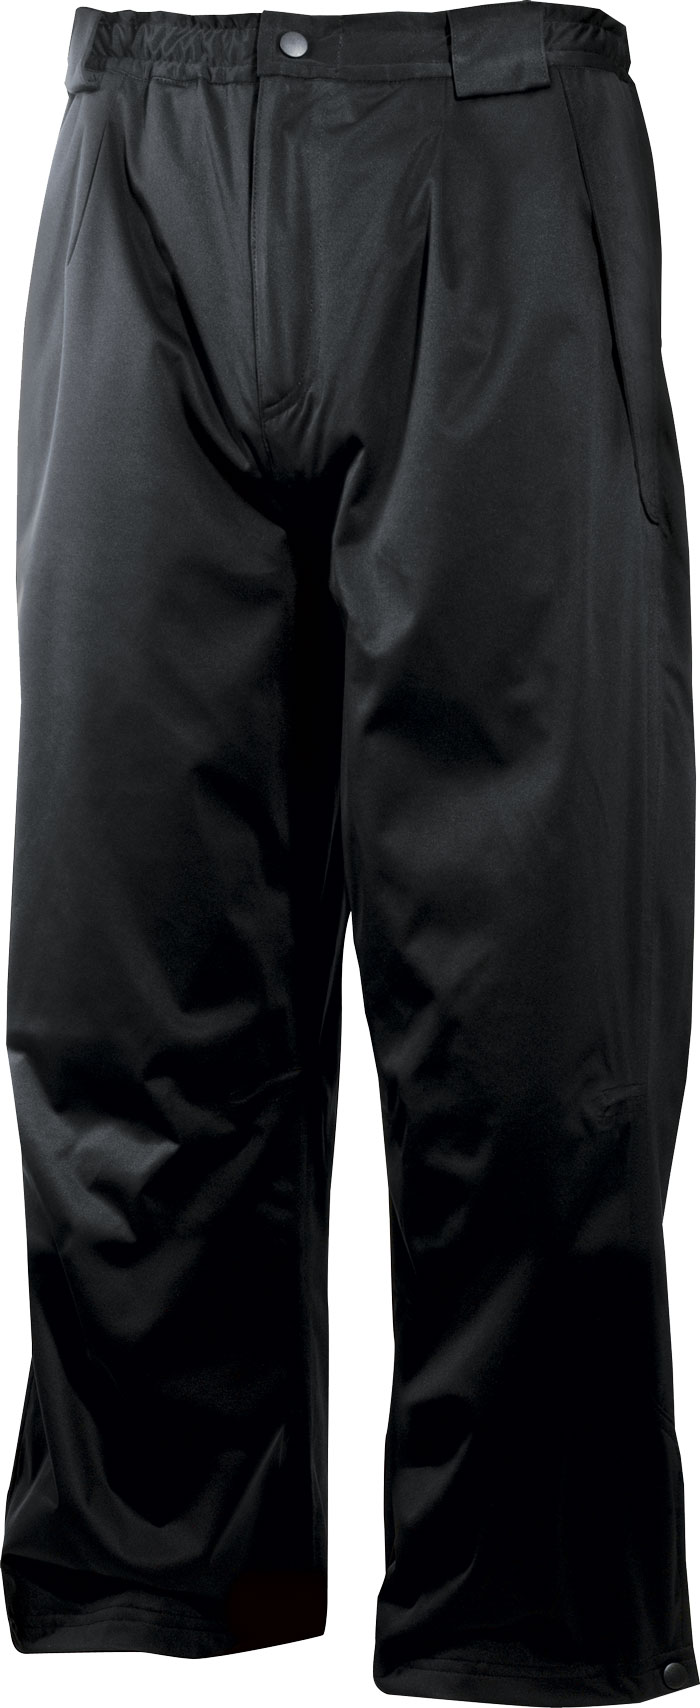 Sunderland Whisper Dry golf trousers